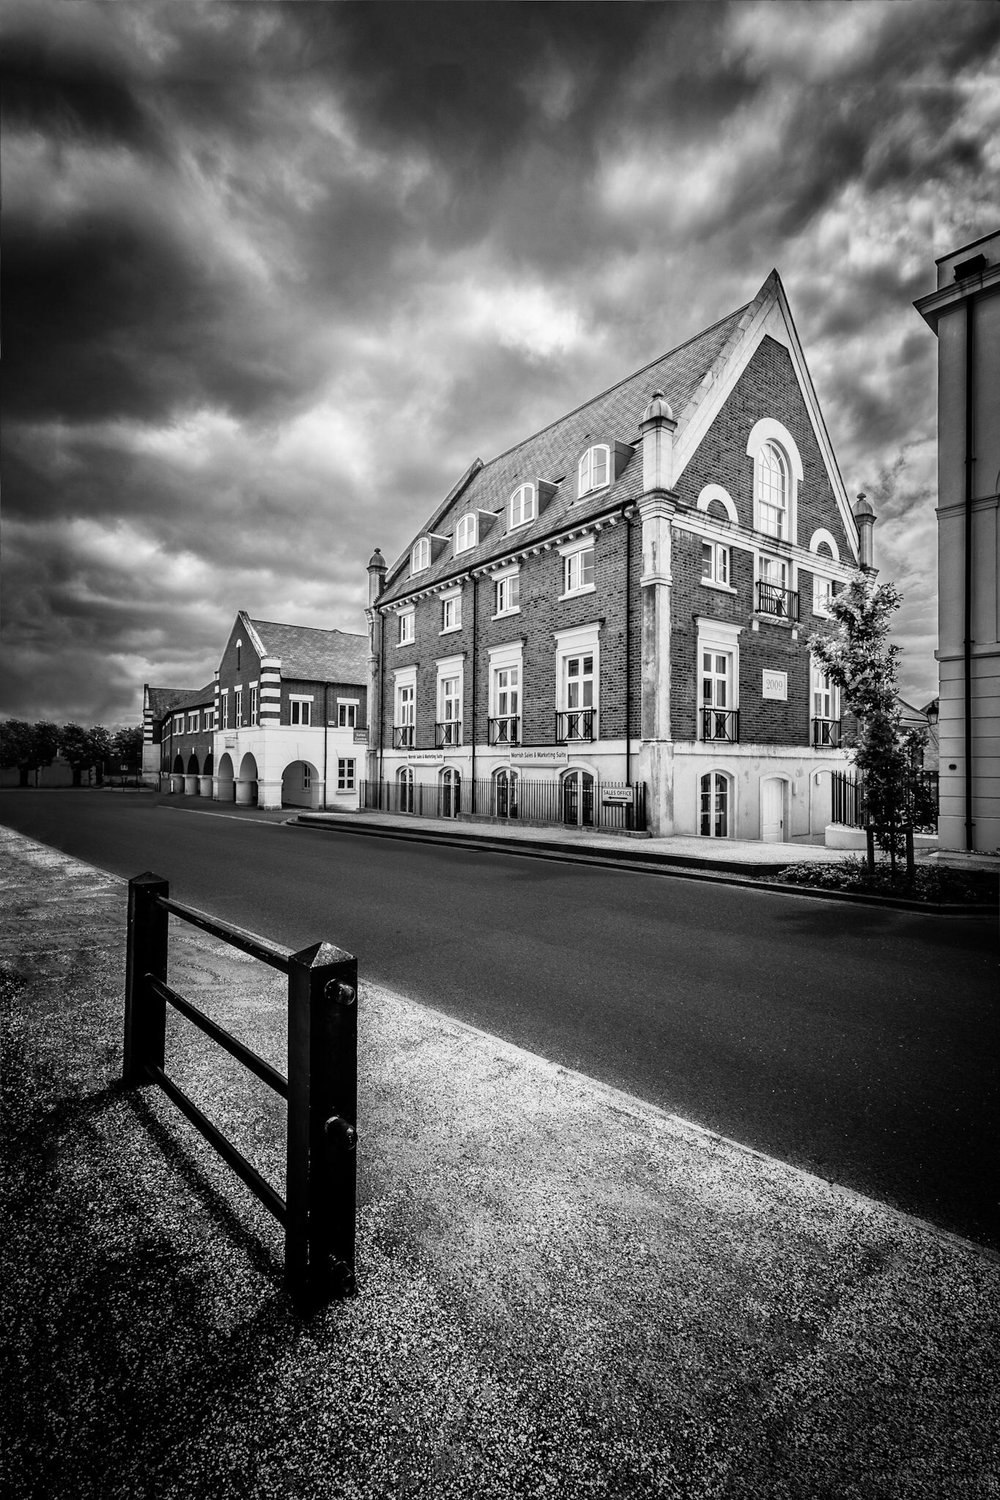 Poundbury architecture photographed for John SImpson Architects